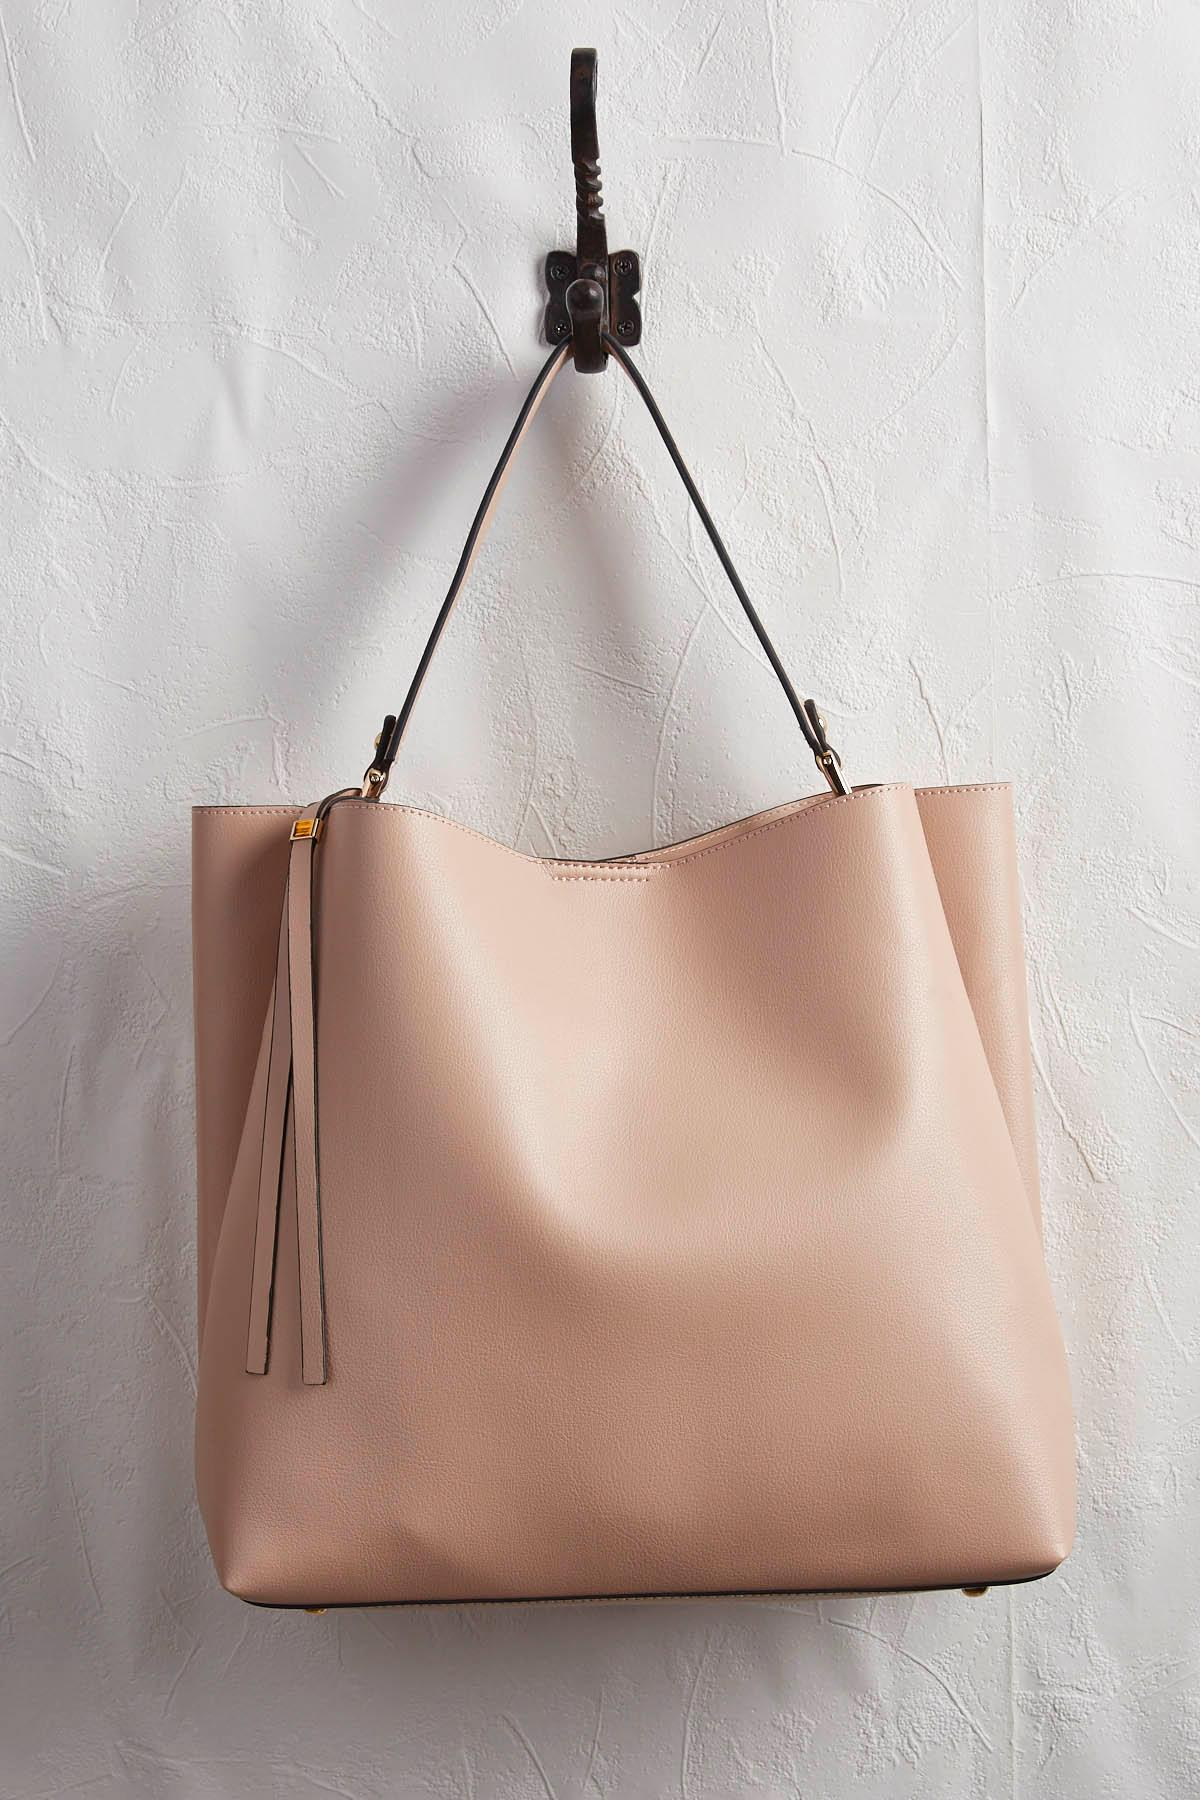 Blush And Canvas Bag In Bag Set